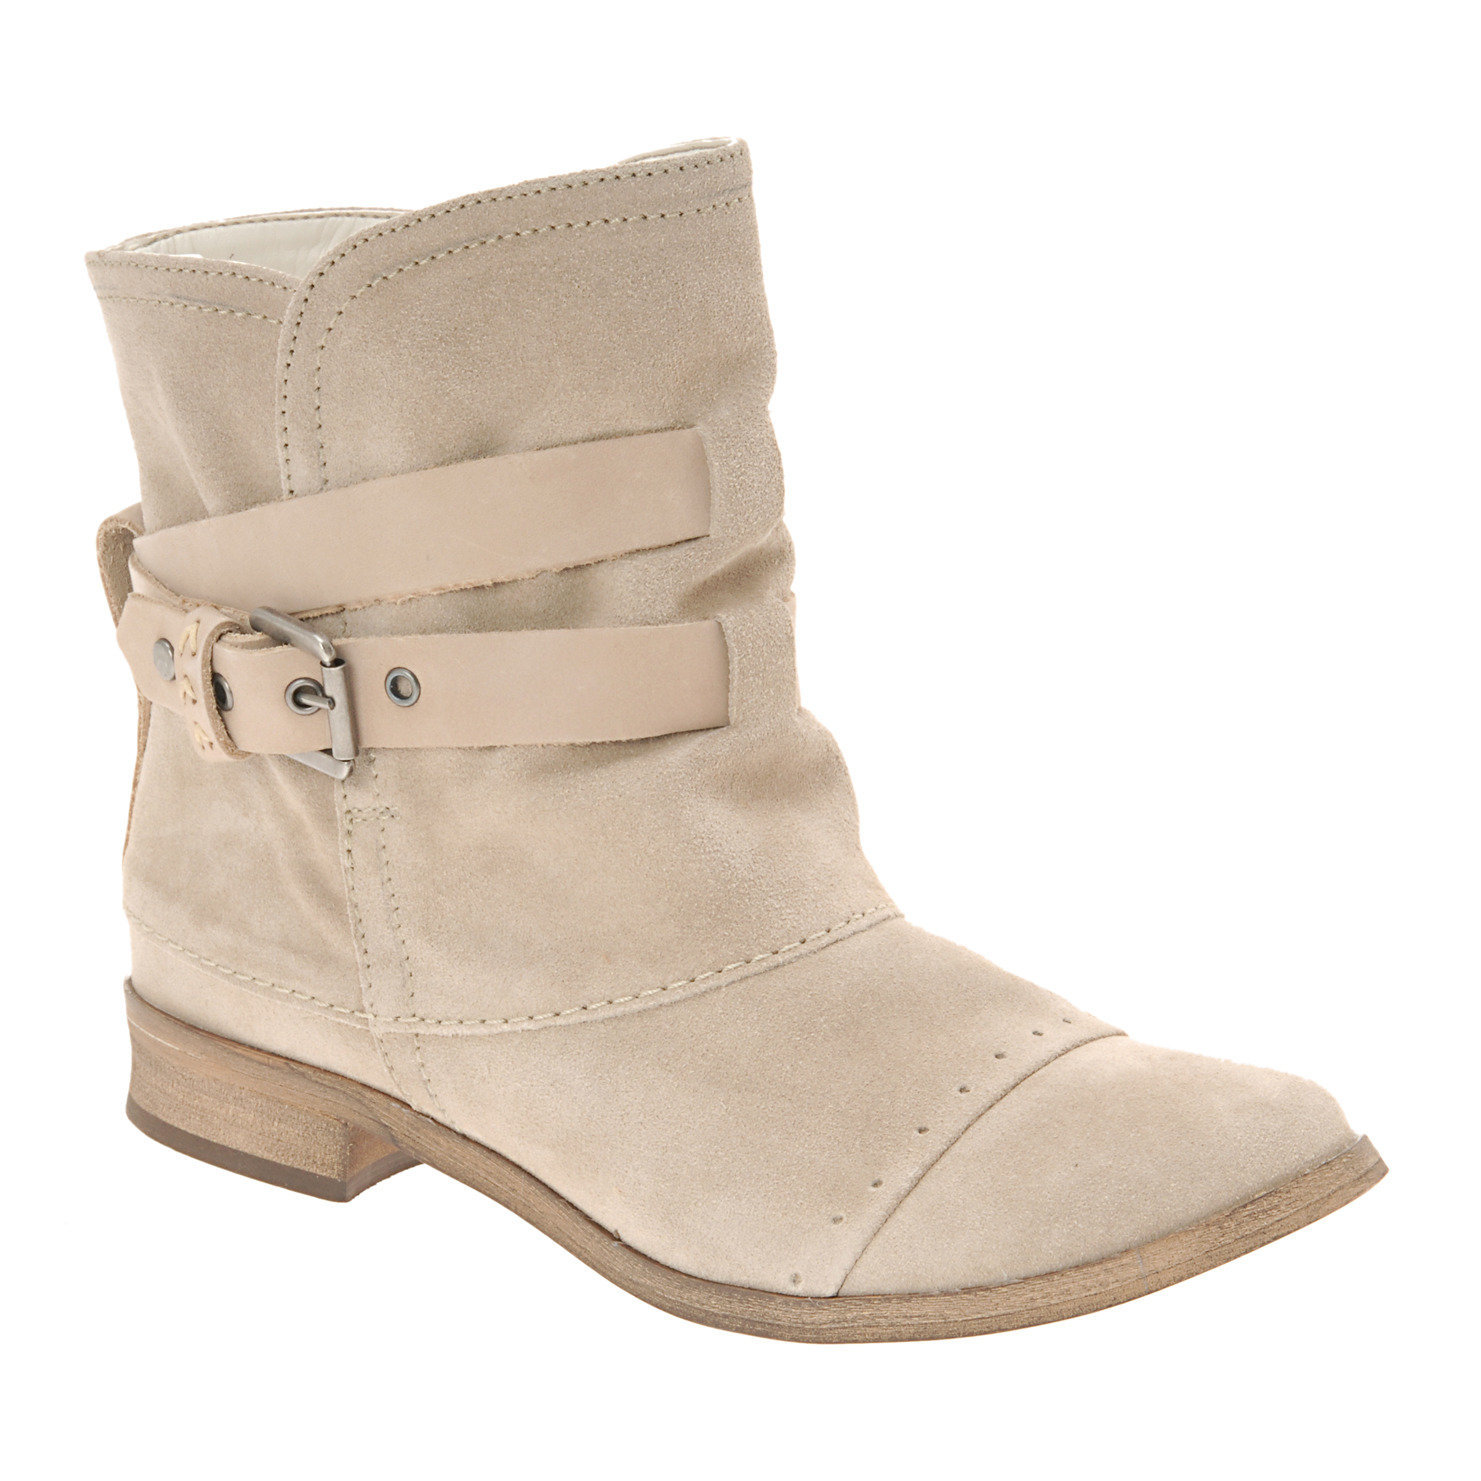 BLEASDALE - women's ankle boots boots for sale at ALDO Shoes.